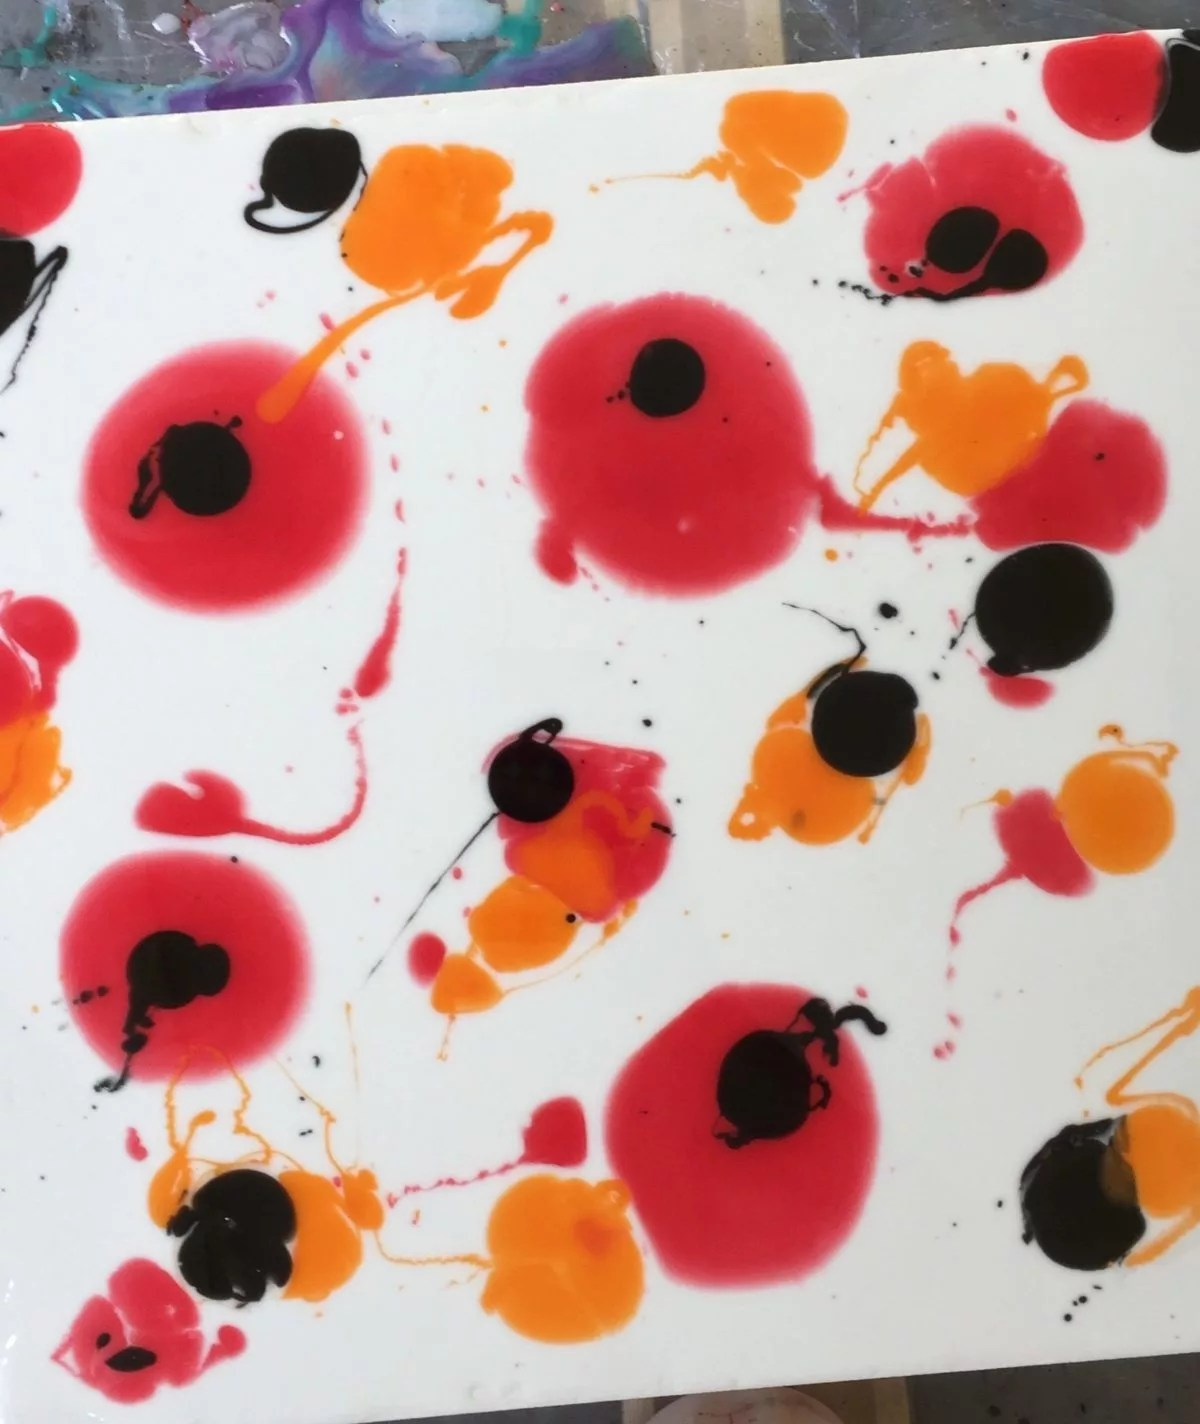 red orange and black resin on a white painting